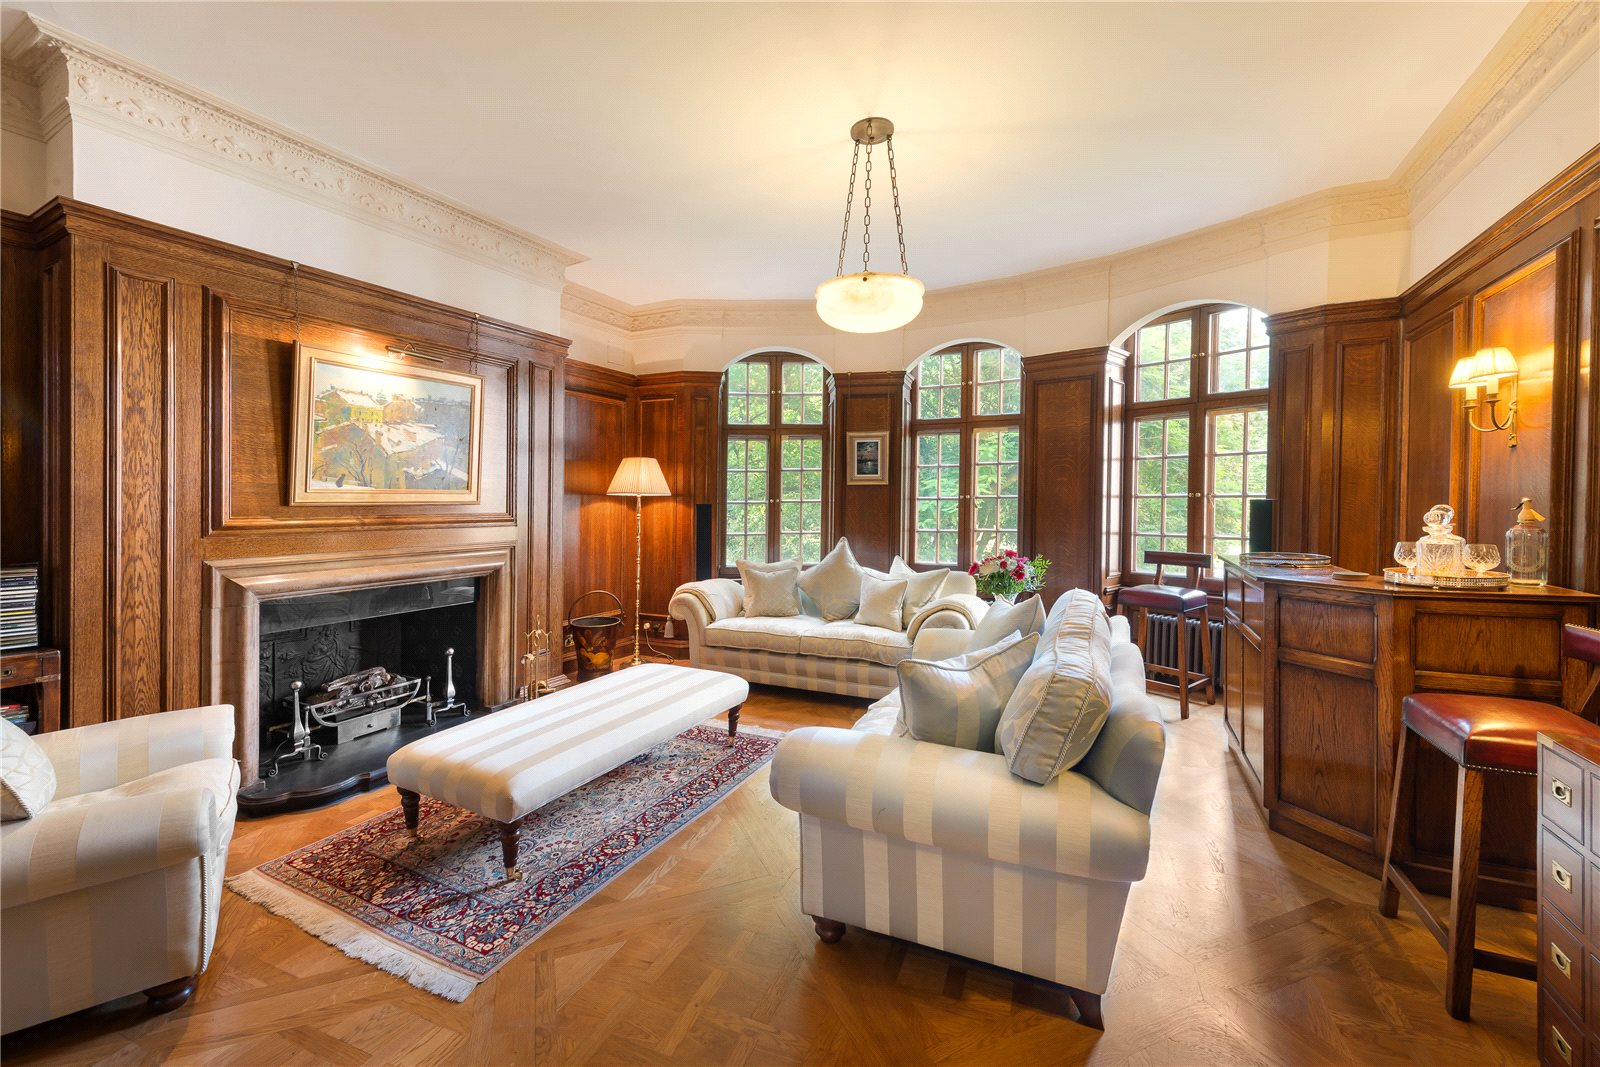 Single Family Home for Sale at Old Queen Street, London, SW1H London, England